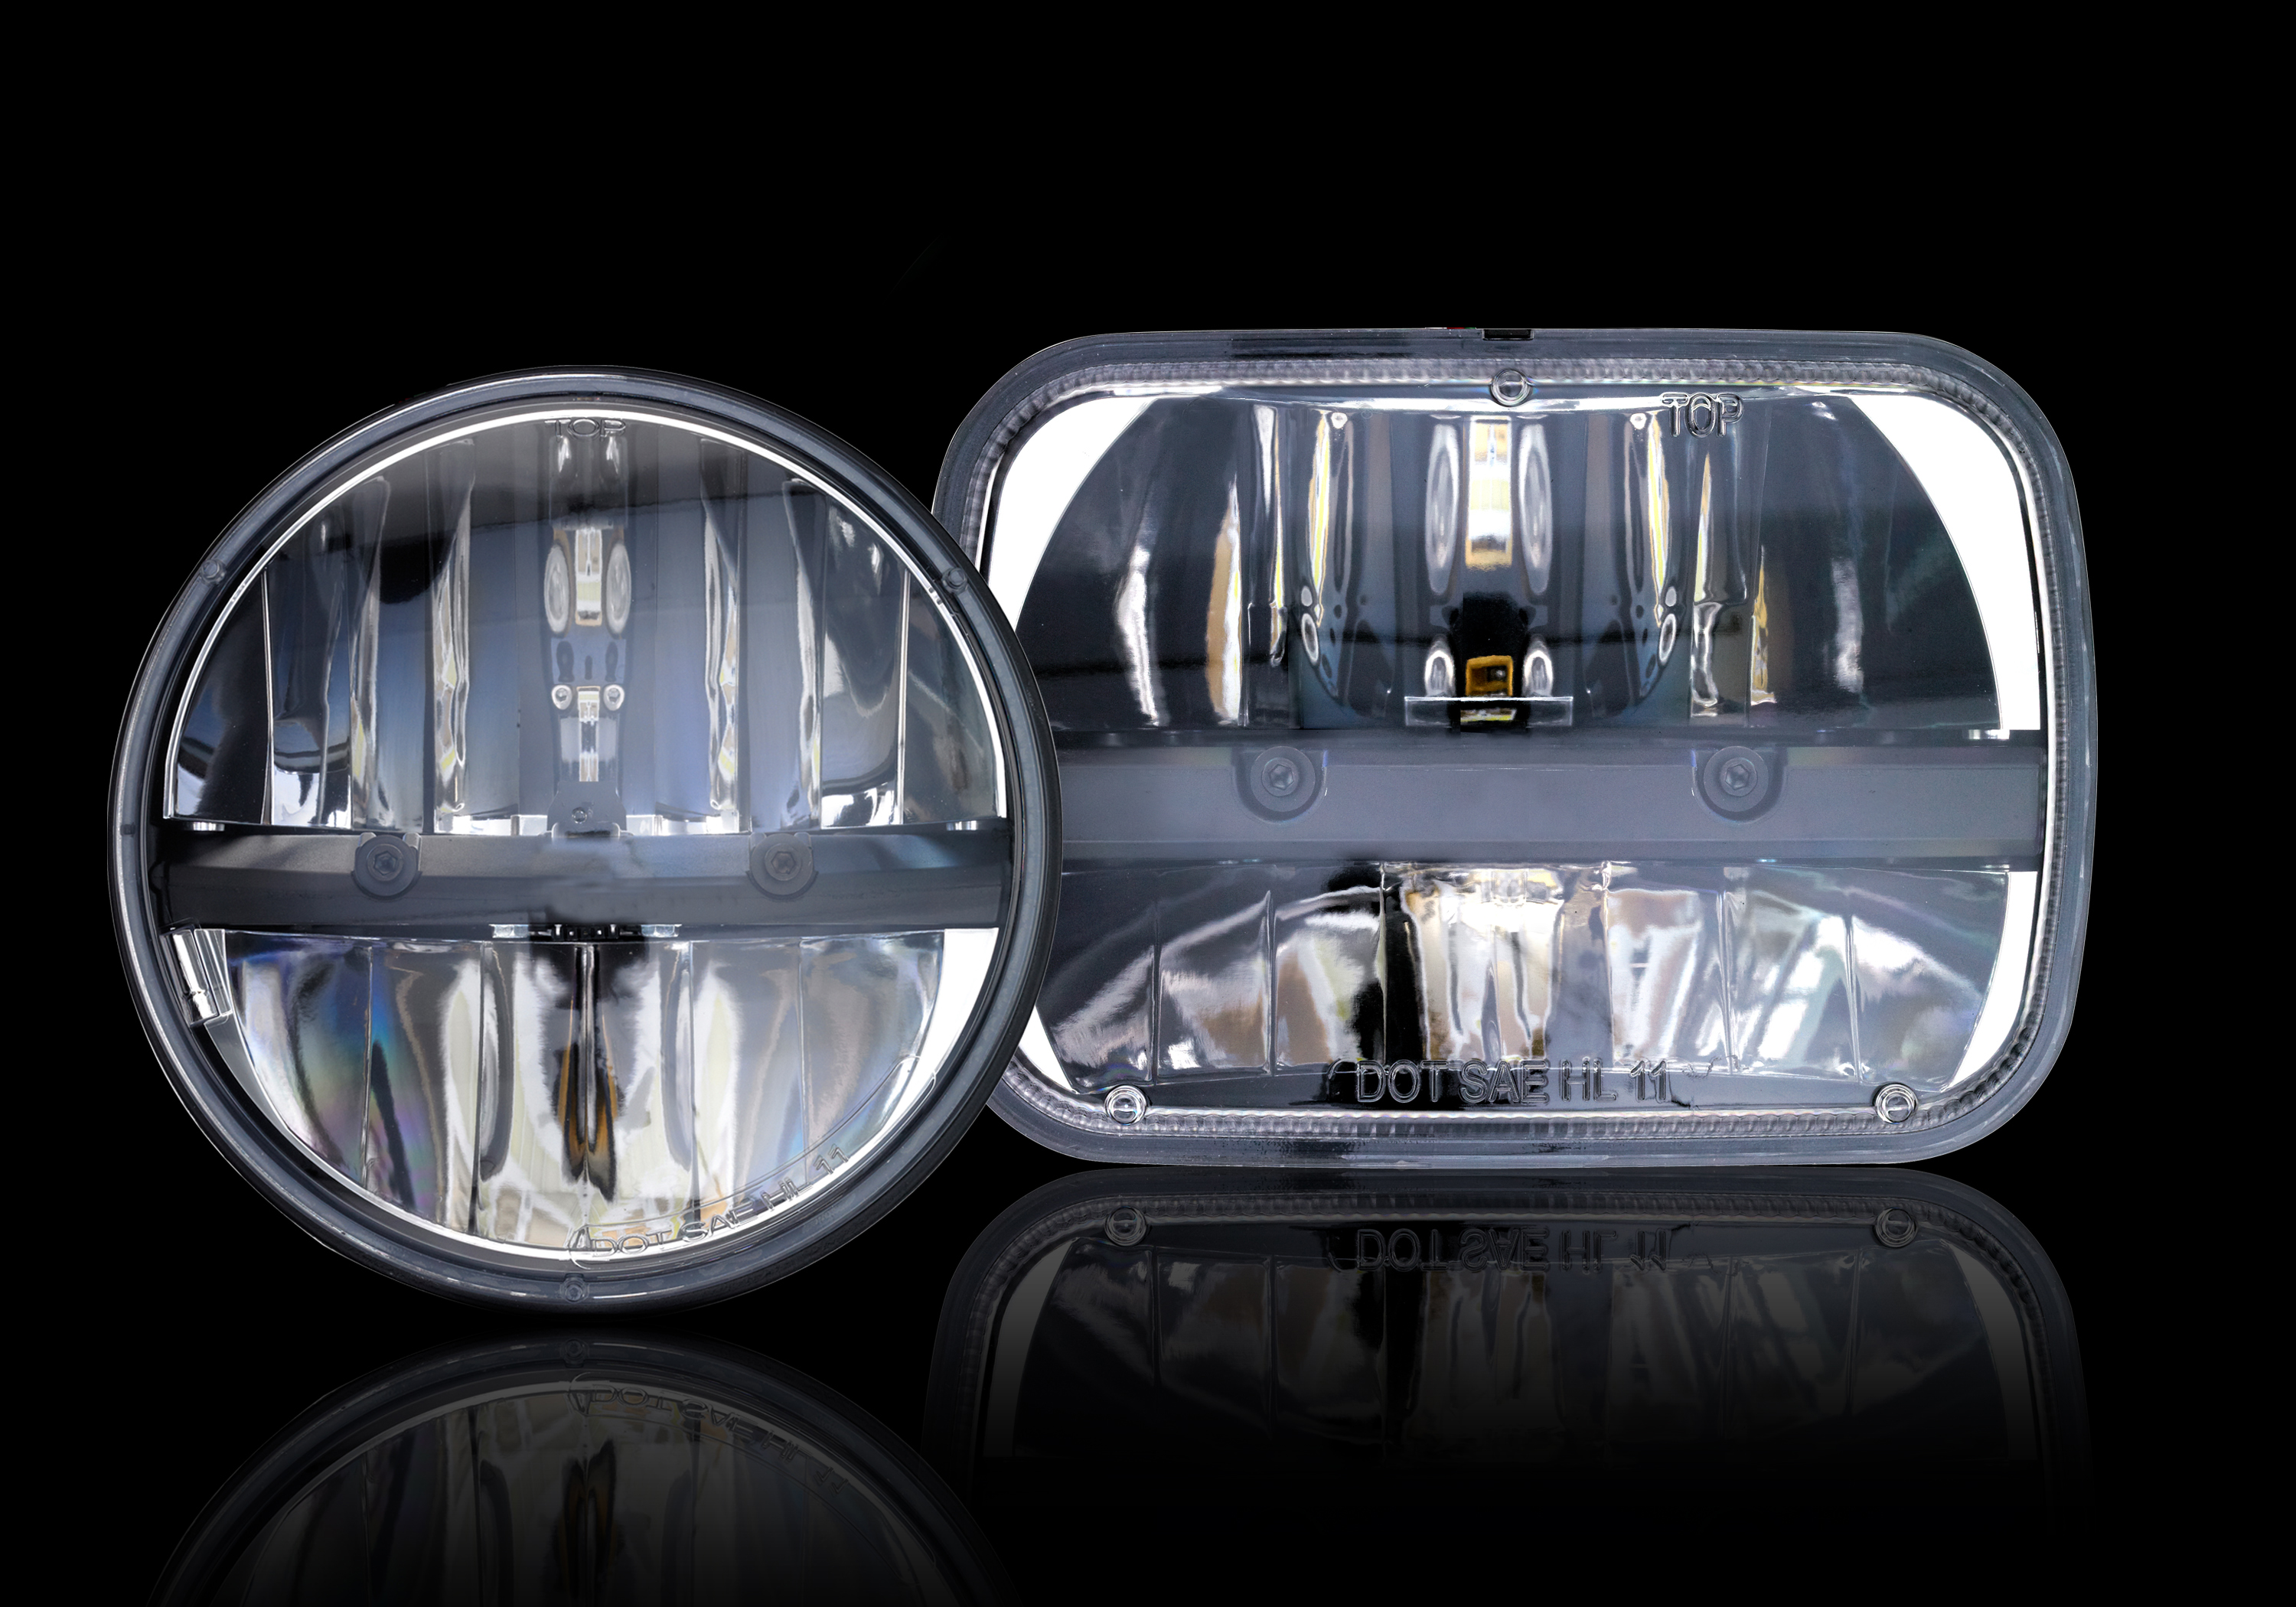 ge s nighthawk led headlights provide a long life rating and improved visibility for drivers. Black Bedroom Furniture Sets. Home Design Ideas